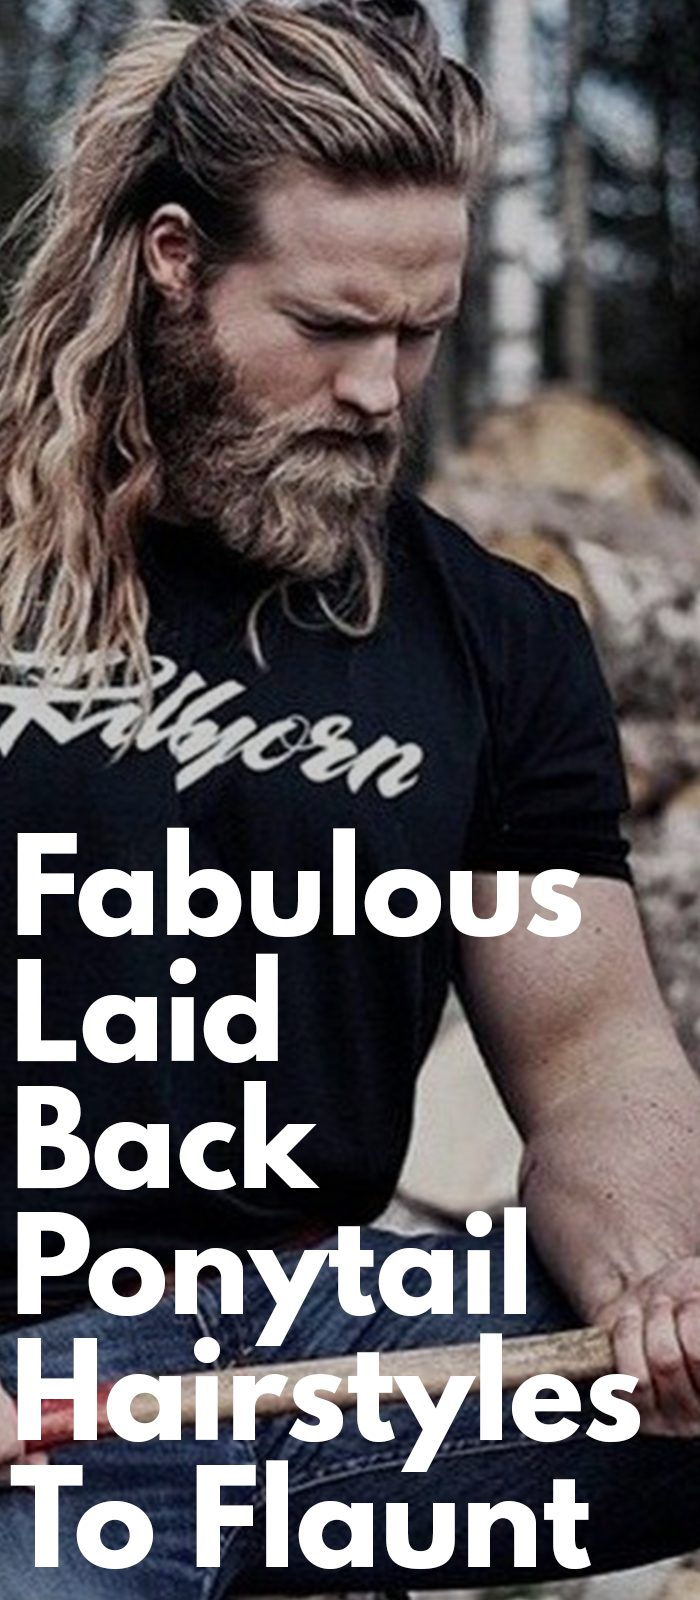 Fabulous Laid Back Ponytail Hairstyles To Flaunt